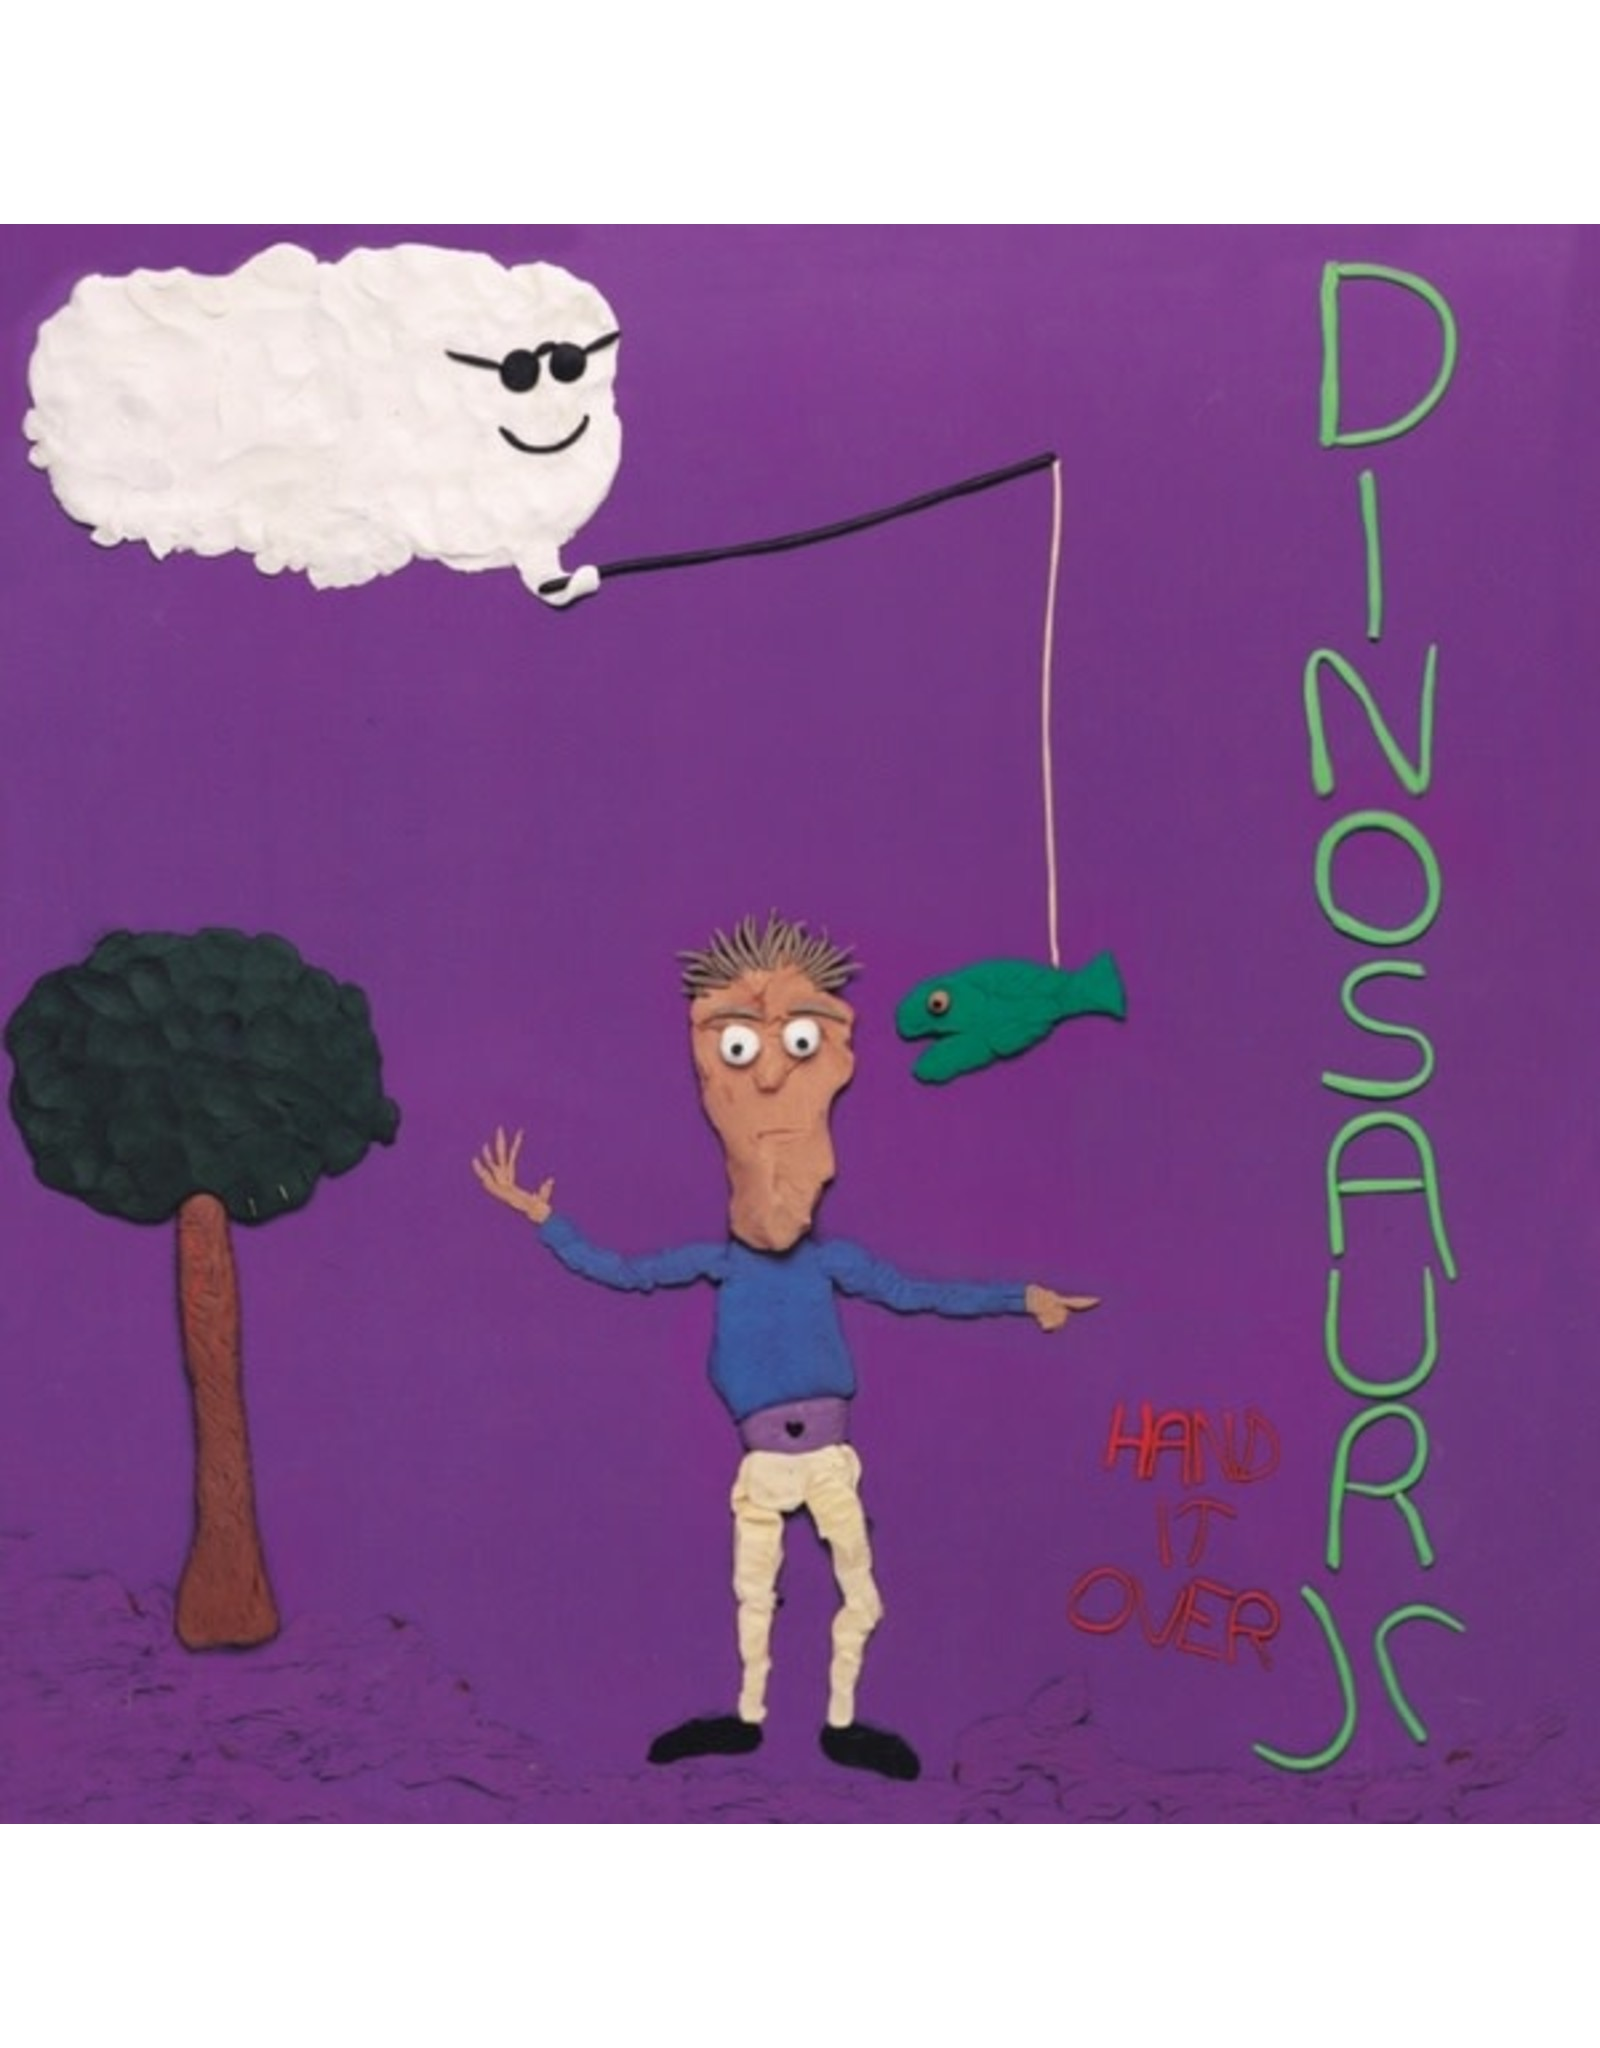 Cherry Red Dinosaur Jr.: Hand It Over: Deluxe Expanded Edition (Double Gatefold Purple Vinyl) LP